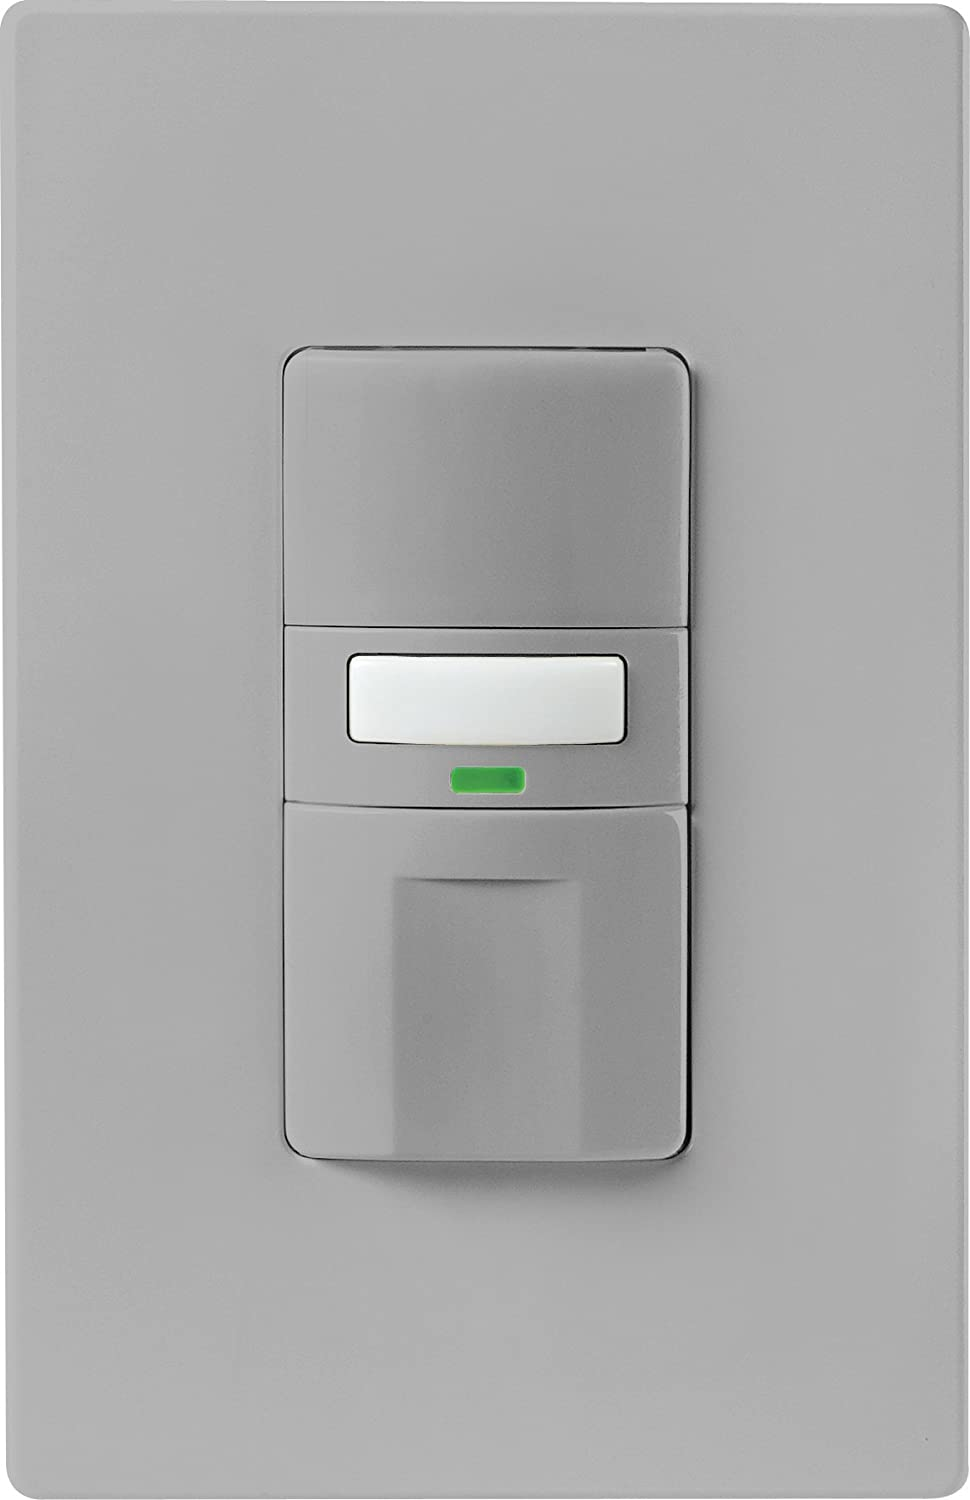 Eaton OS310U-GY-K Motion-Activated free Occupancy Wall Switch Sensor Max 44% OFF